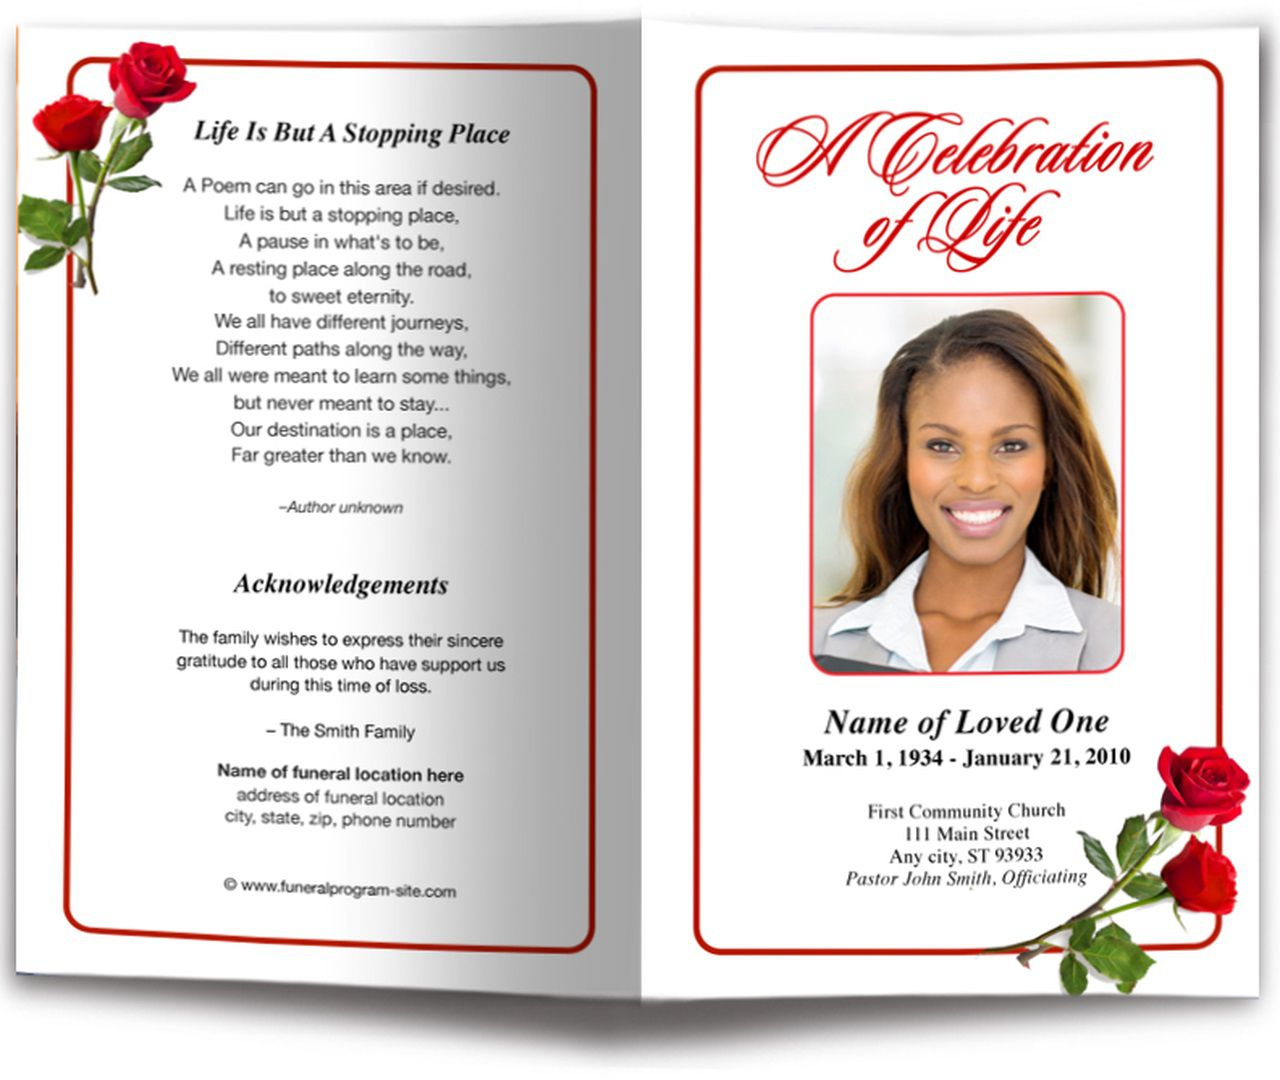 006 Incredible Funeral Program Template Free Inspiration  Blank Microsoft Word Layout Editable UkFull